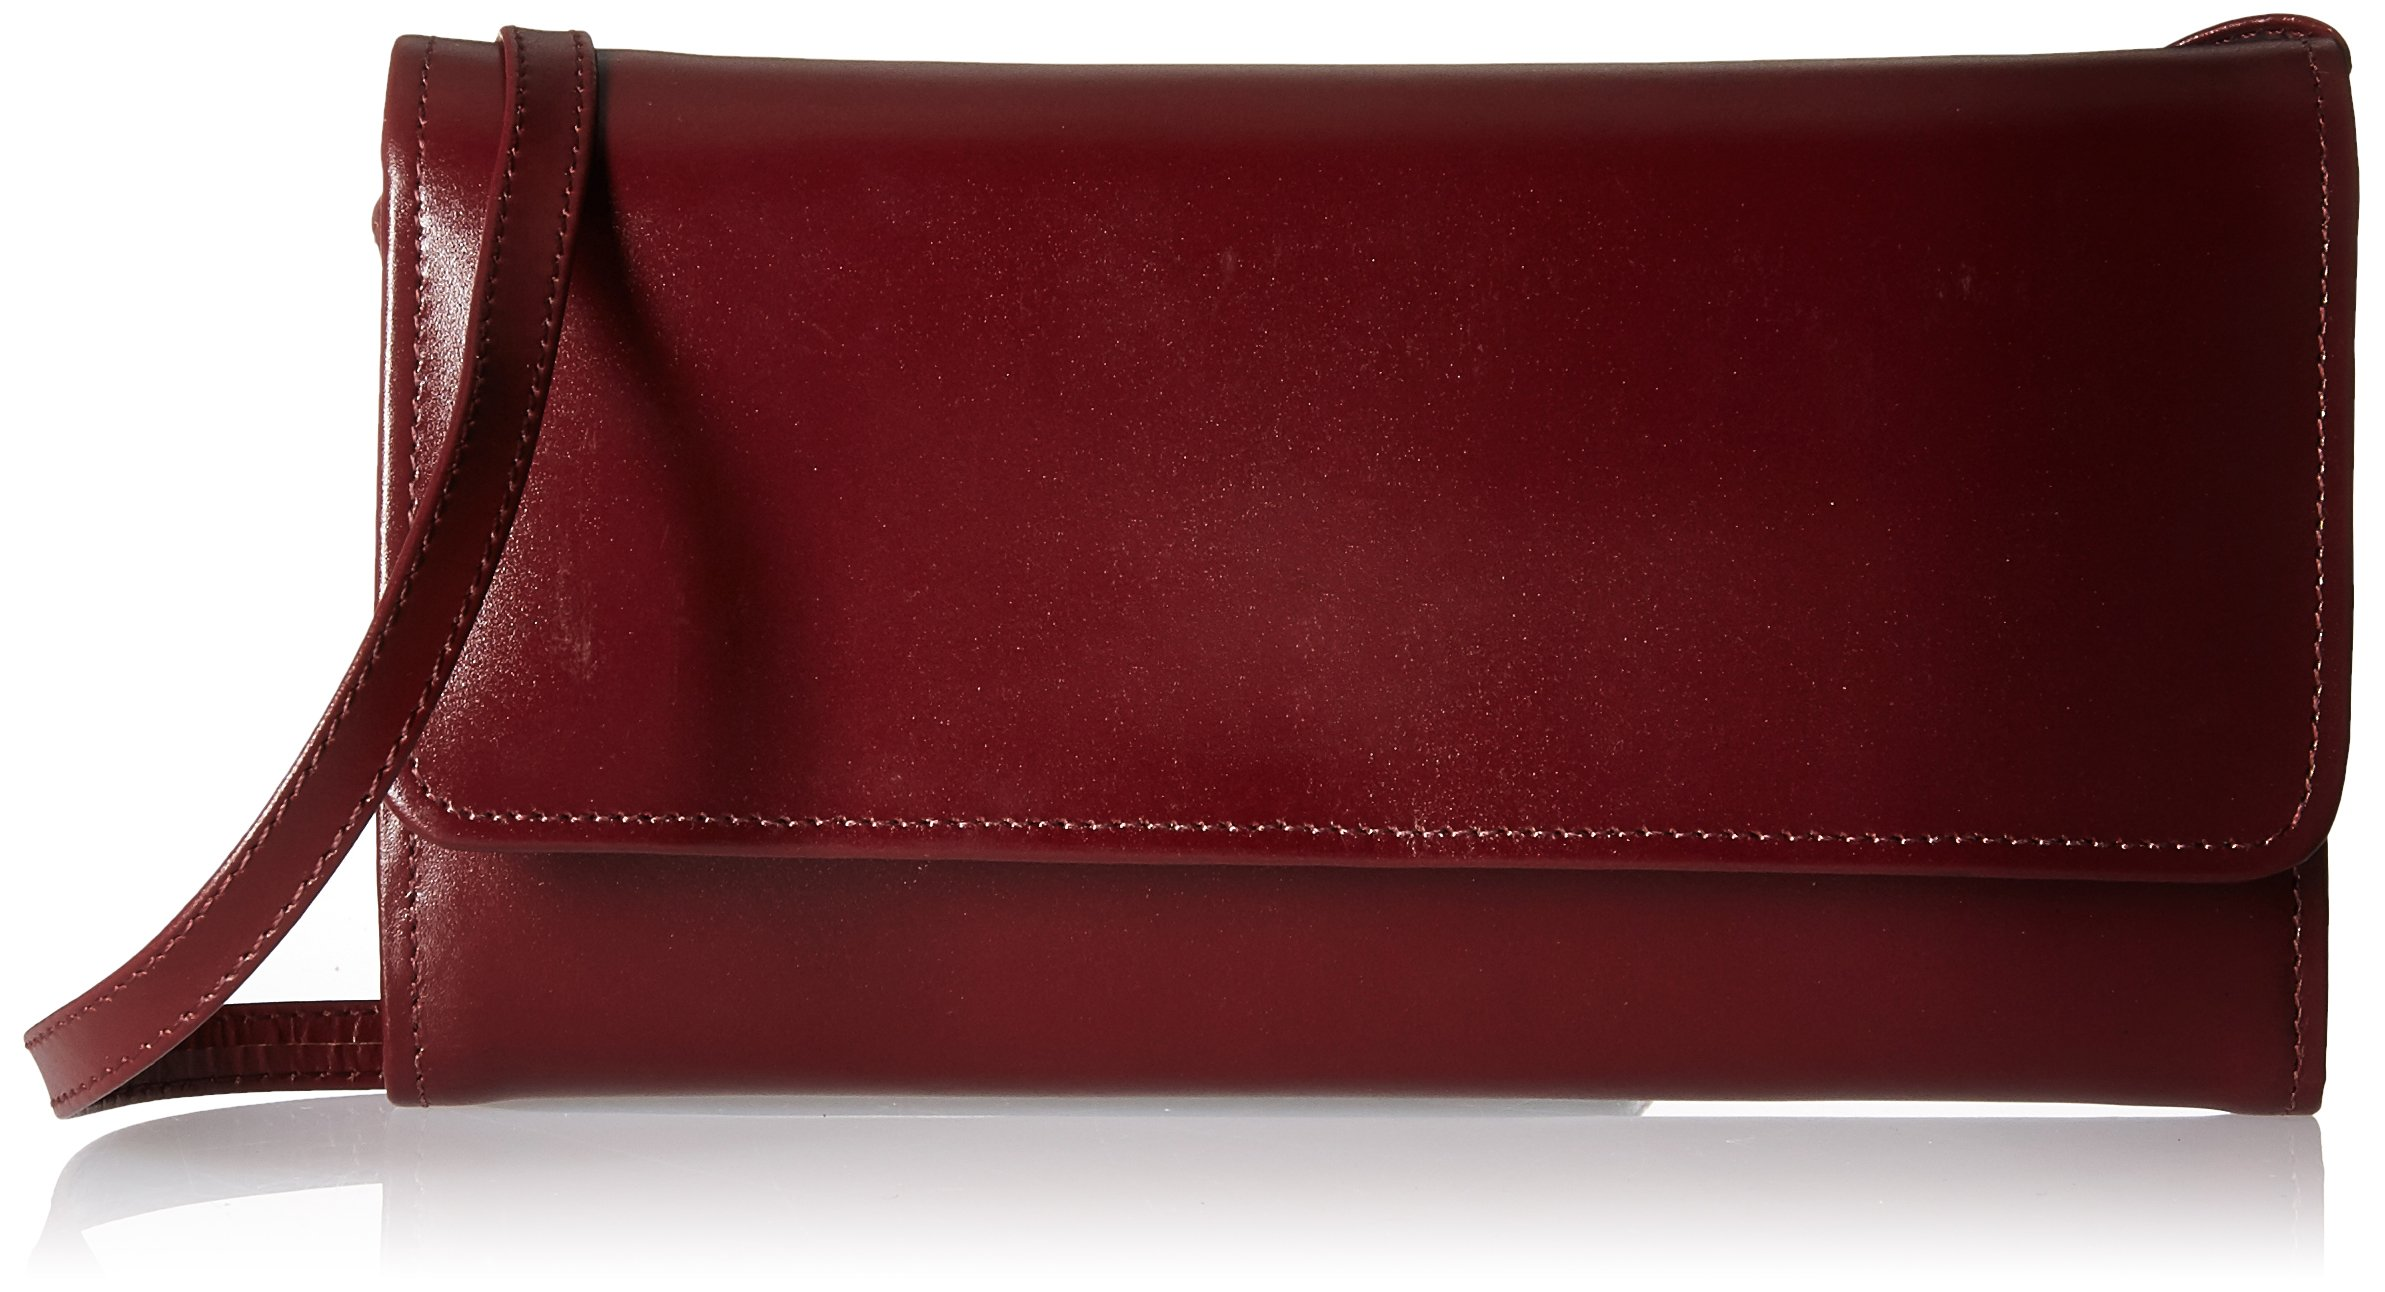 Claire Chase Women's Tri-fold Crossbody Wallet, Cognac